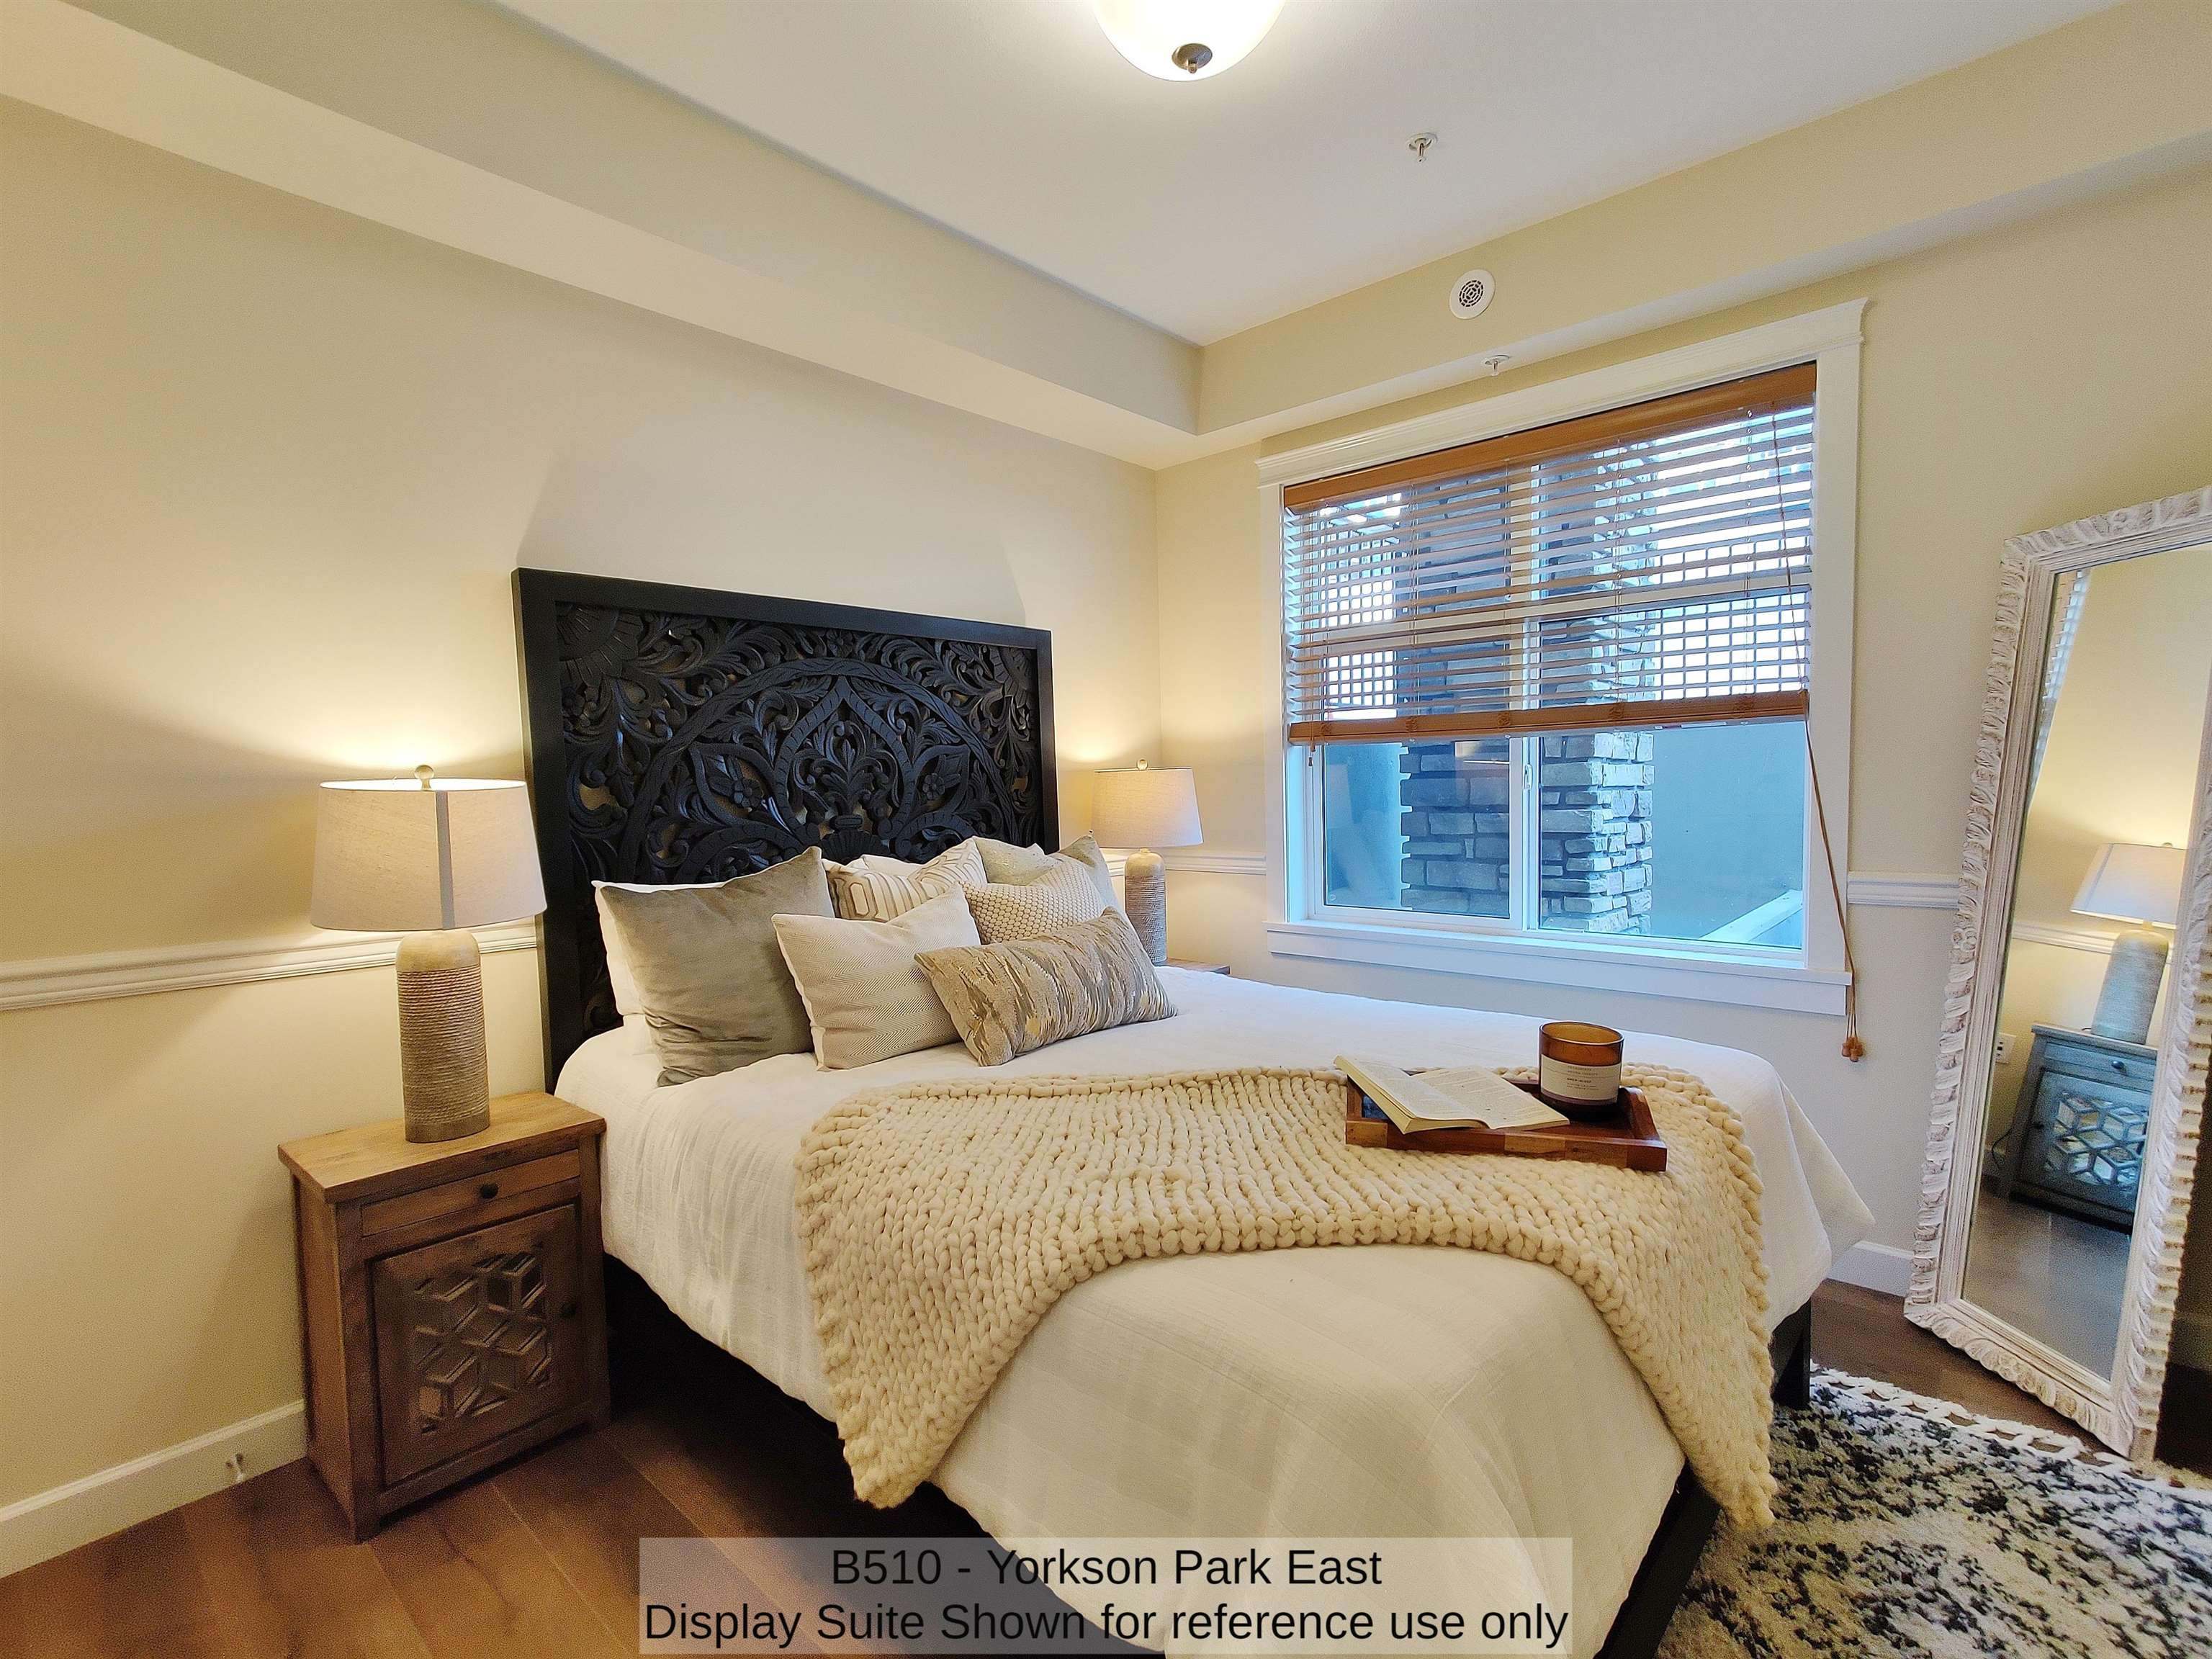 510 8538 203A STREET - Willoughby Heights Apartment/Condo for sale, 1 Bedroom (R2562641) - #17